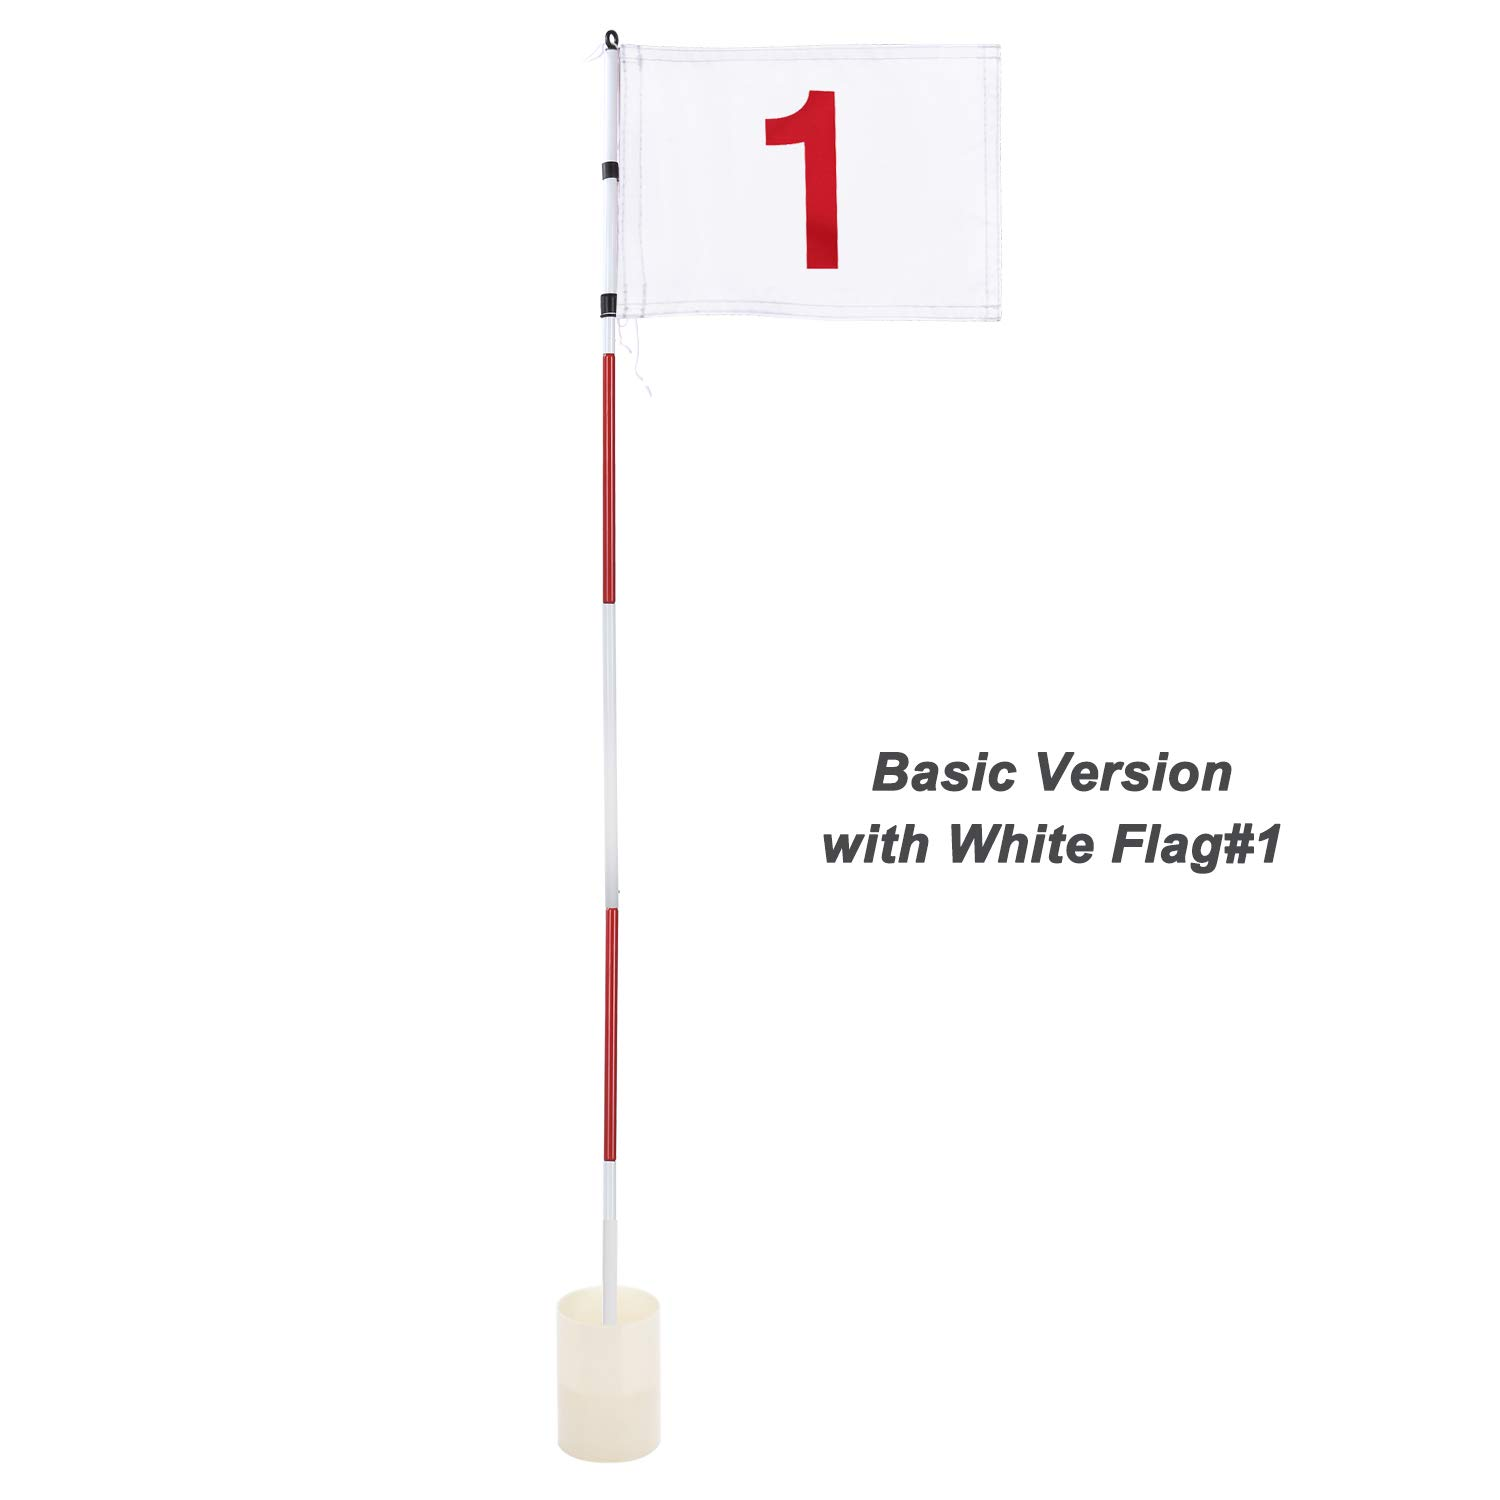 KINGTOP Professional Golf Pin Flag, Practice Putting Green Flagstick Hole Cup Set, Indoor/Outdoor, Portable 5-Section Design, Solid Red Flag Numbered #1, Both 71-inch (Basic) by KINGTOP